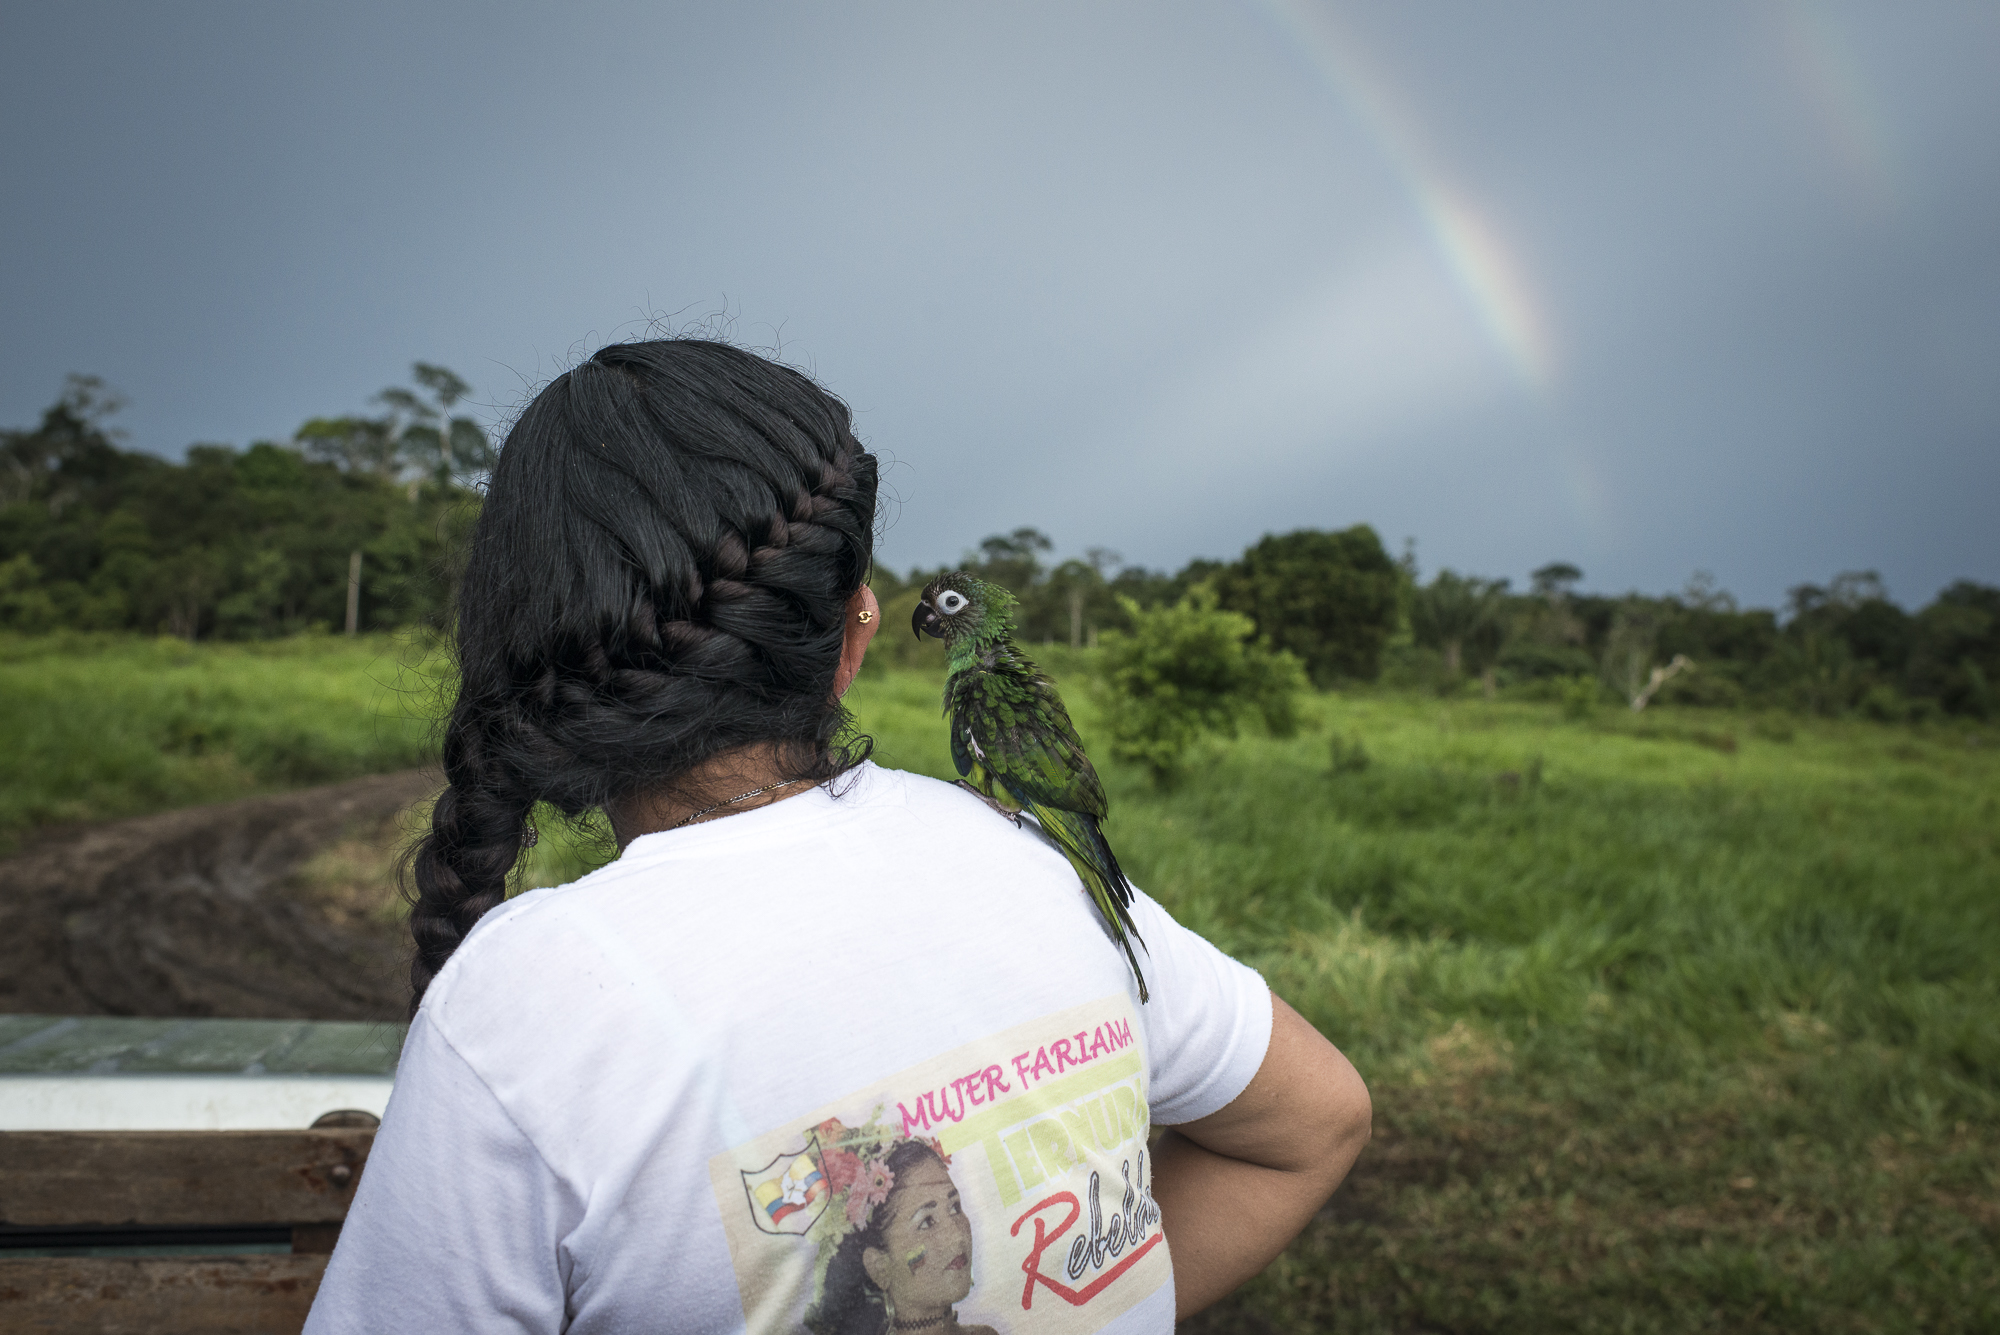 "June 2016, South Caquetá. Fernanda and Paquita, her baby parrot, are looking at a double rainbow at the end of a day. On her t-shirt is writing ""Mujer Fariana"", woman of the FARC culture.Criticized by the past for the lack of space given to female and LGBTI rights, the FARC guerrilla promoted in contrast a gender dimension into the first peace deal signed on September 26, 2016. But on October 2, 50,22% of the referendum voters rejected the agreement. A new peace deal has been negotiated and signed on November 24, with almost all the gender references removed according to the evangelical churches request, which were among the most powerful No promoters."